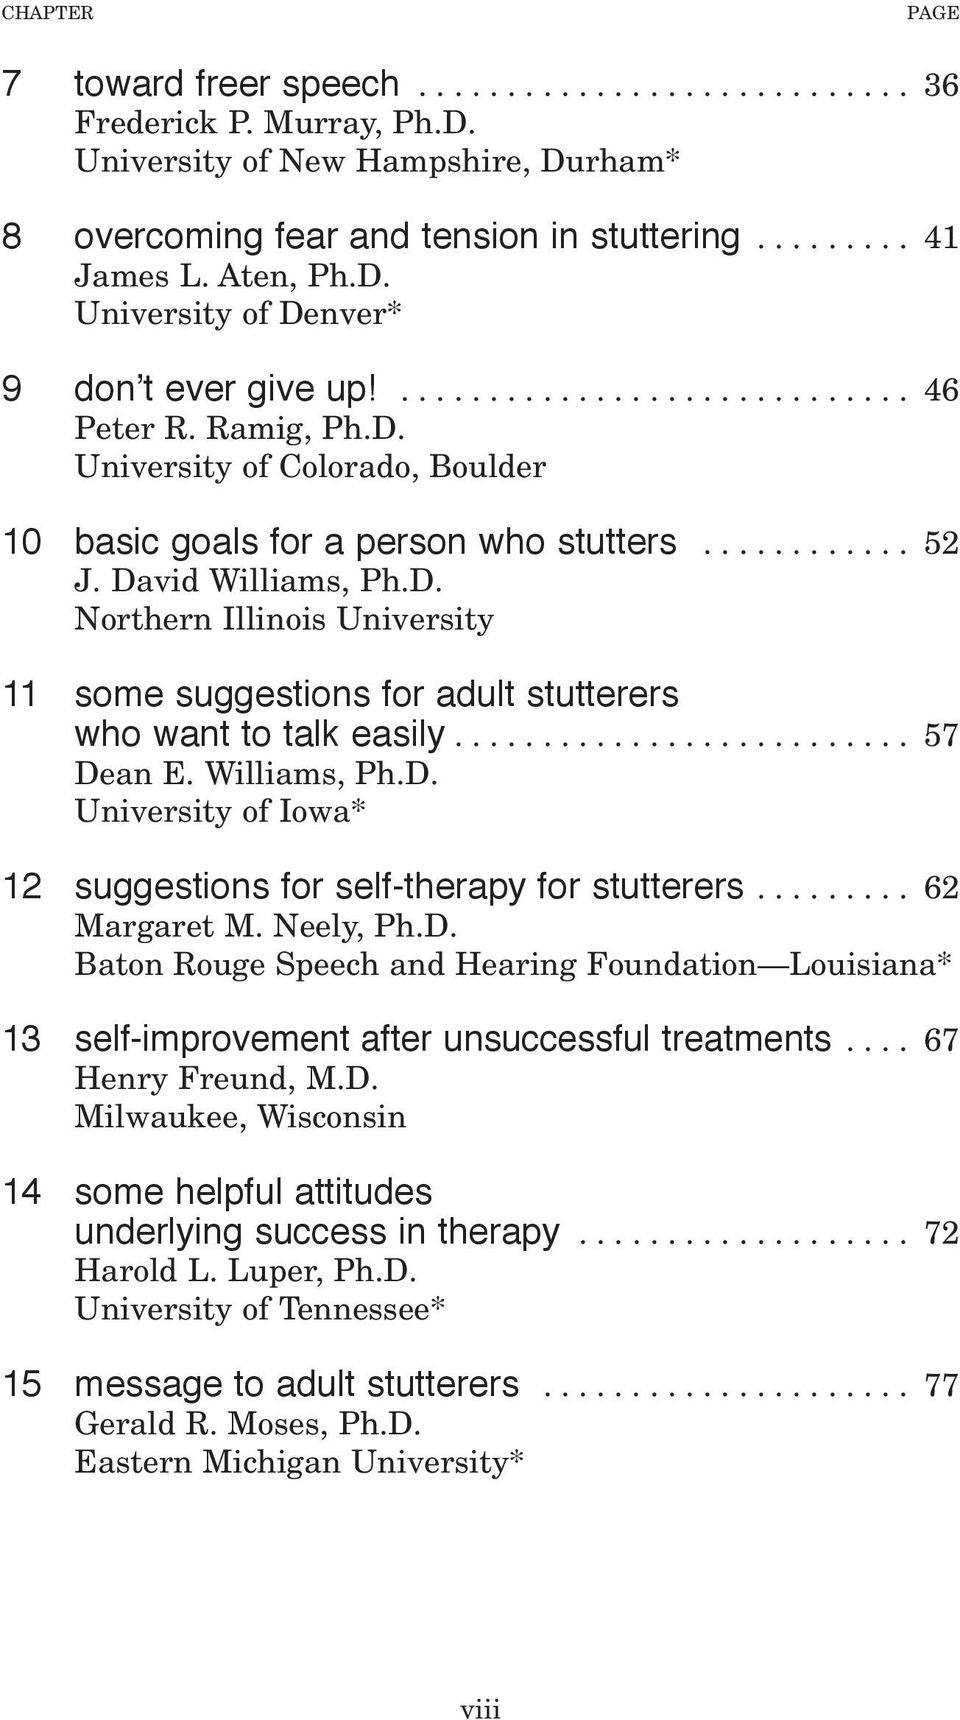 David Williams, Ph.D. Northern Illinois University 11 some suggestions for adult stutterers who want to talk easily.......................... 57 Dean E. Williams, Ph.D. University of Iowa* 12 suggestions for self-therapy for stutterers.